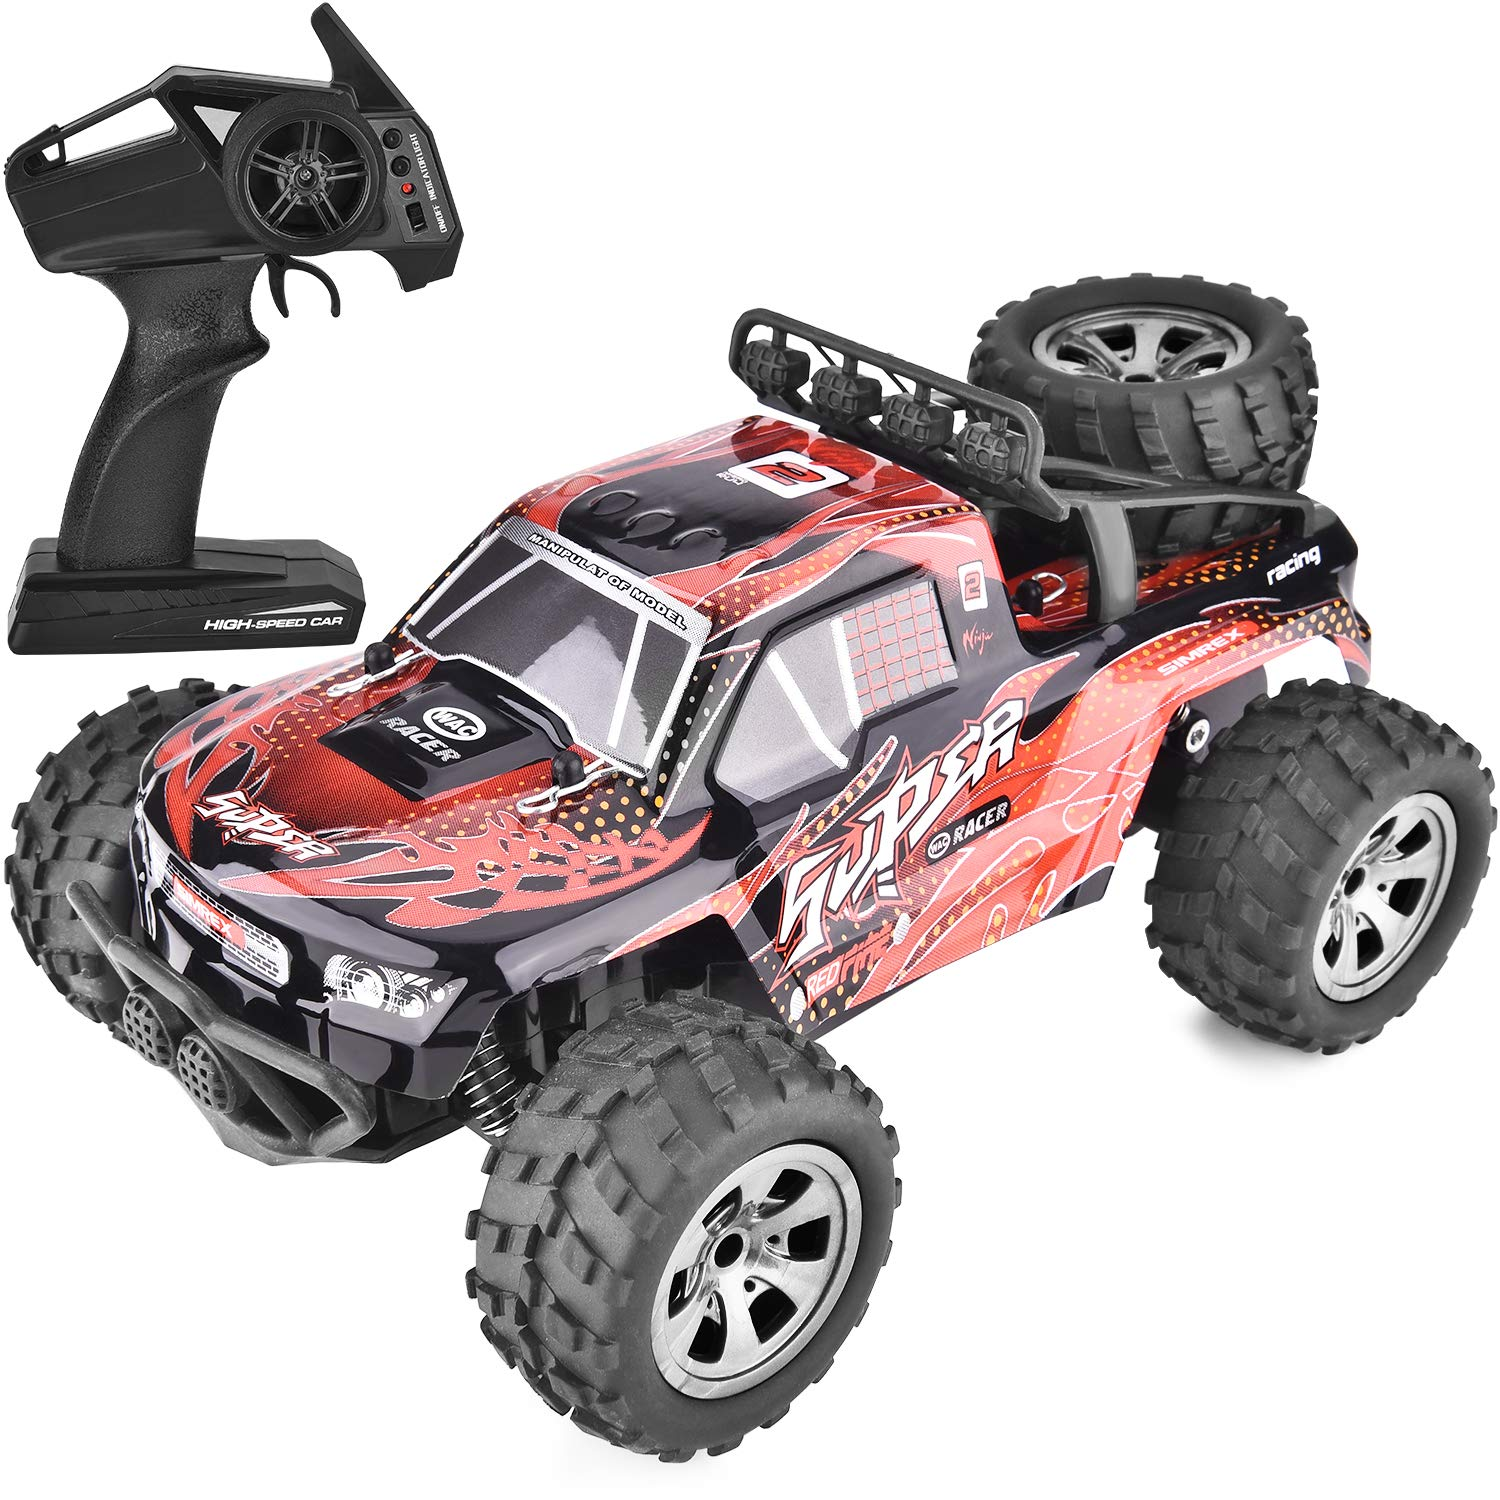 SIMREX A241 RC Cars High Speed 20KM/H Scale RTR Remote Control Brushed Monster Truck Off Road Car Big Foot RC 2WD Electric Power Buggy W/2.4G Challenger Red